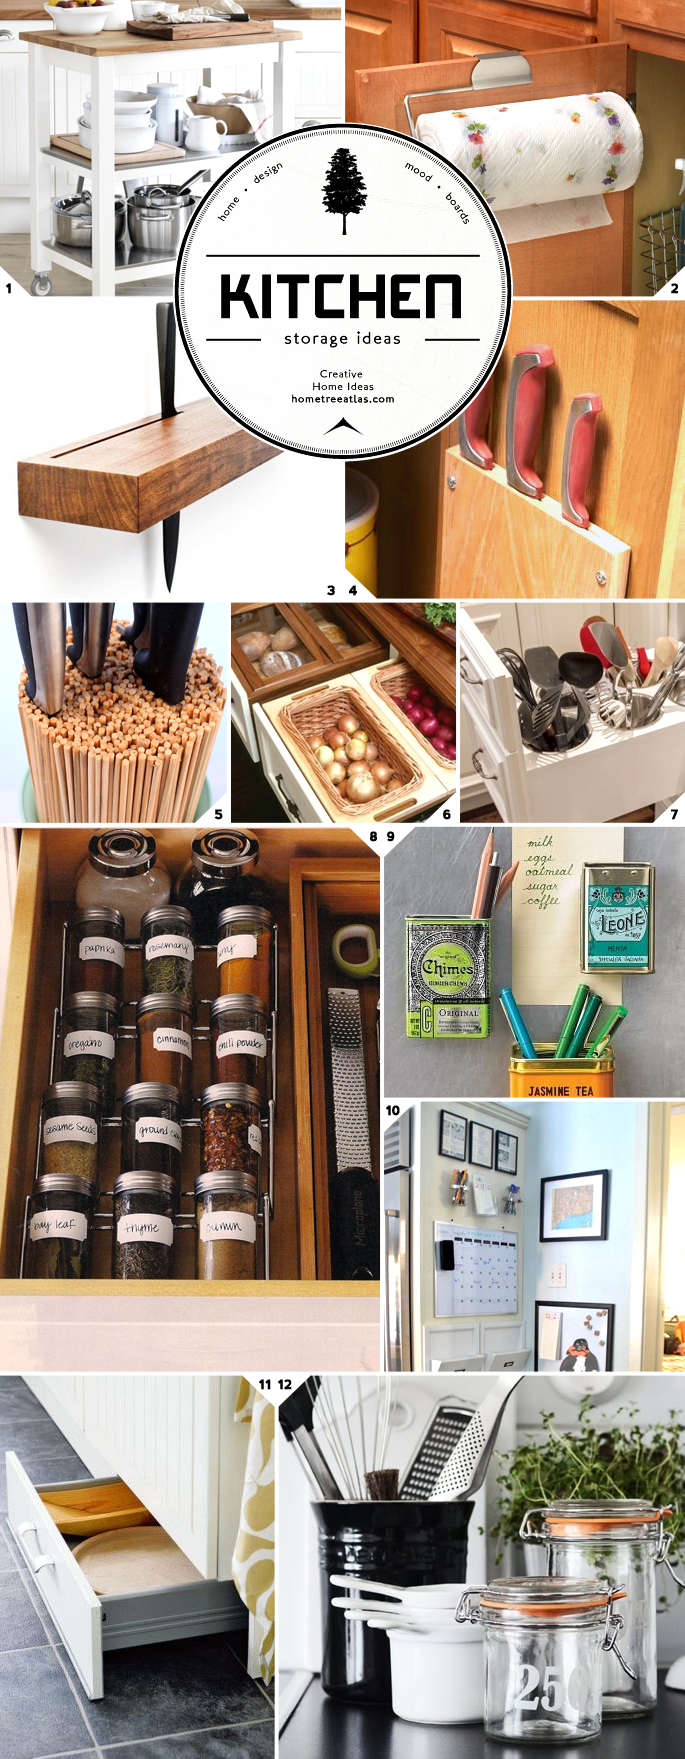 Kitchen Storage Ideas | Mood Board